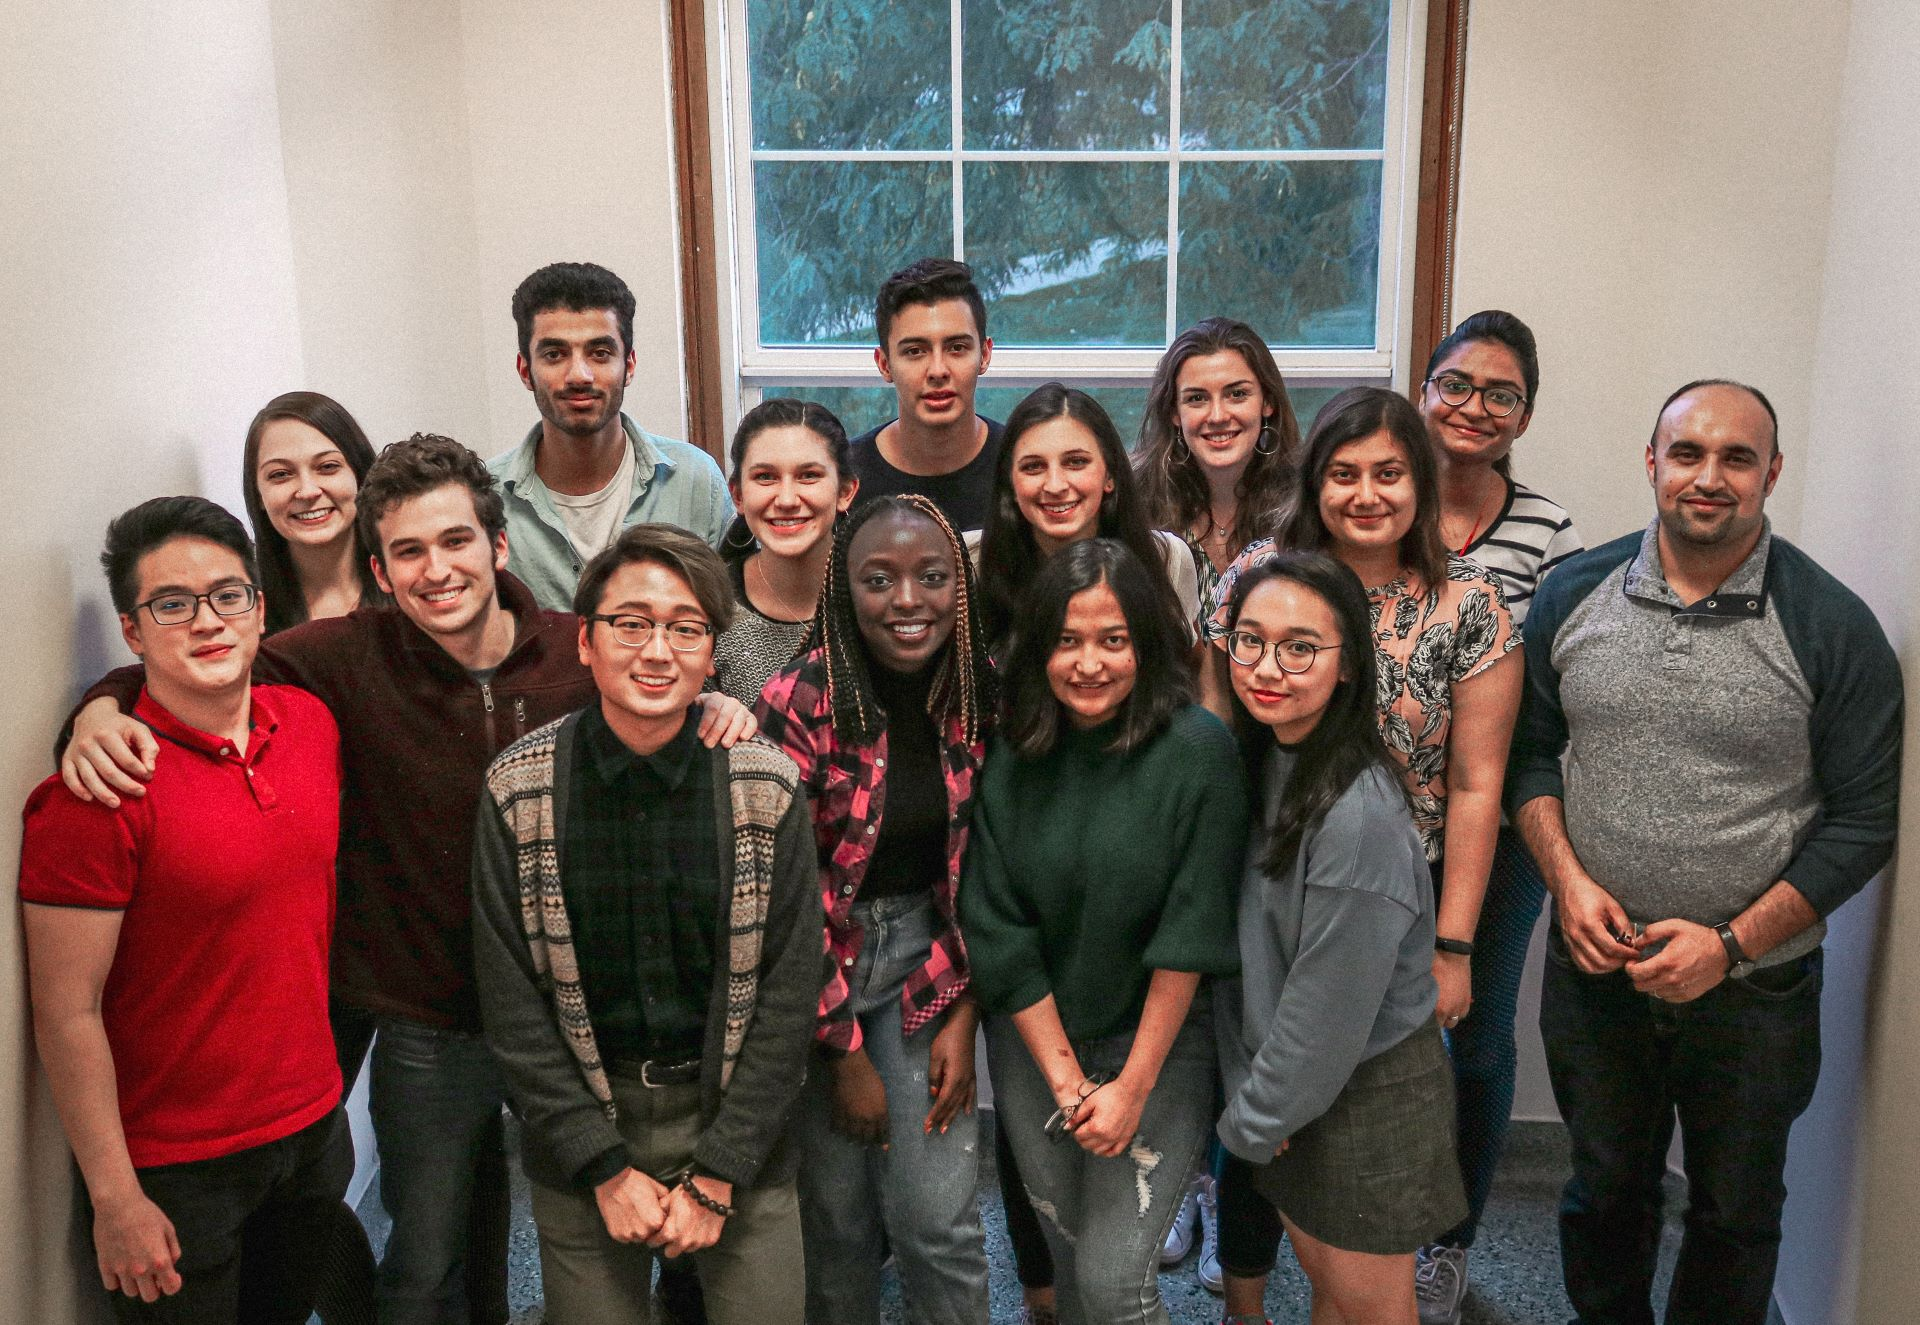 The 2019-20 Global Peer Assistant team is made up of 15 domestic and international students from around the world to help build connections on campus for new international students. Junior Linh Tran is pictured at the bottom right.